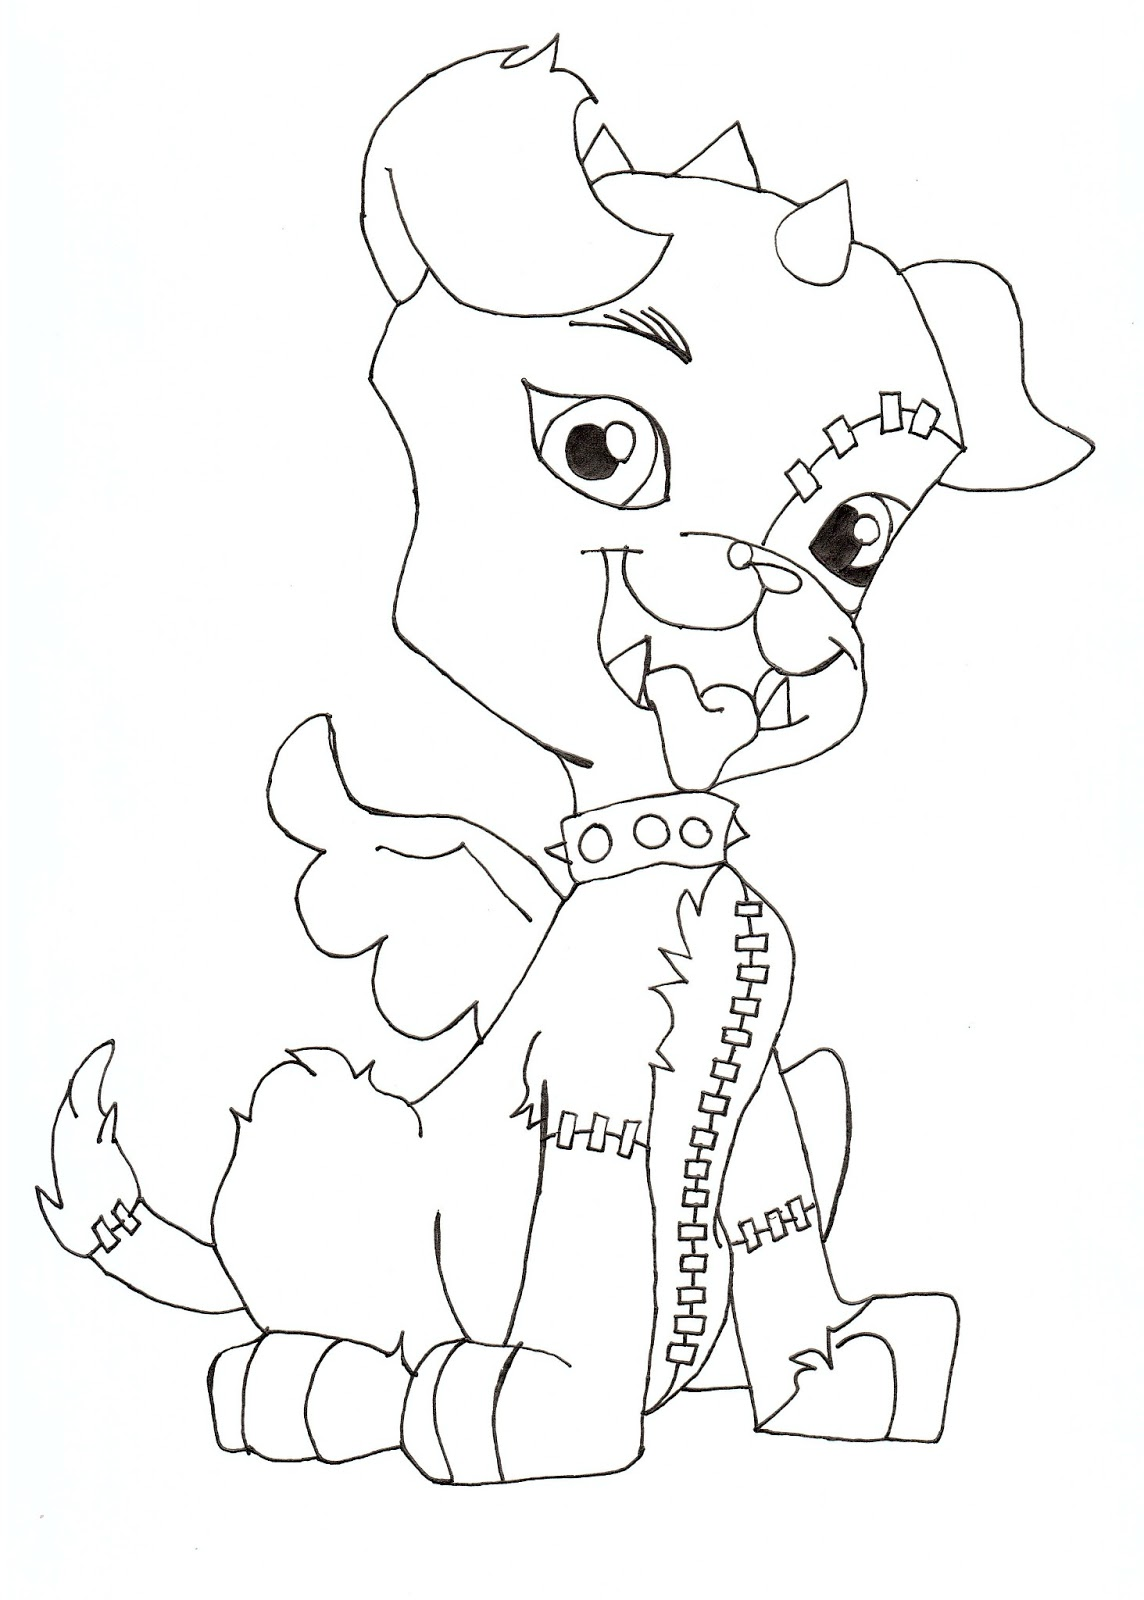 Fan image intended for monster high coloring pages printable